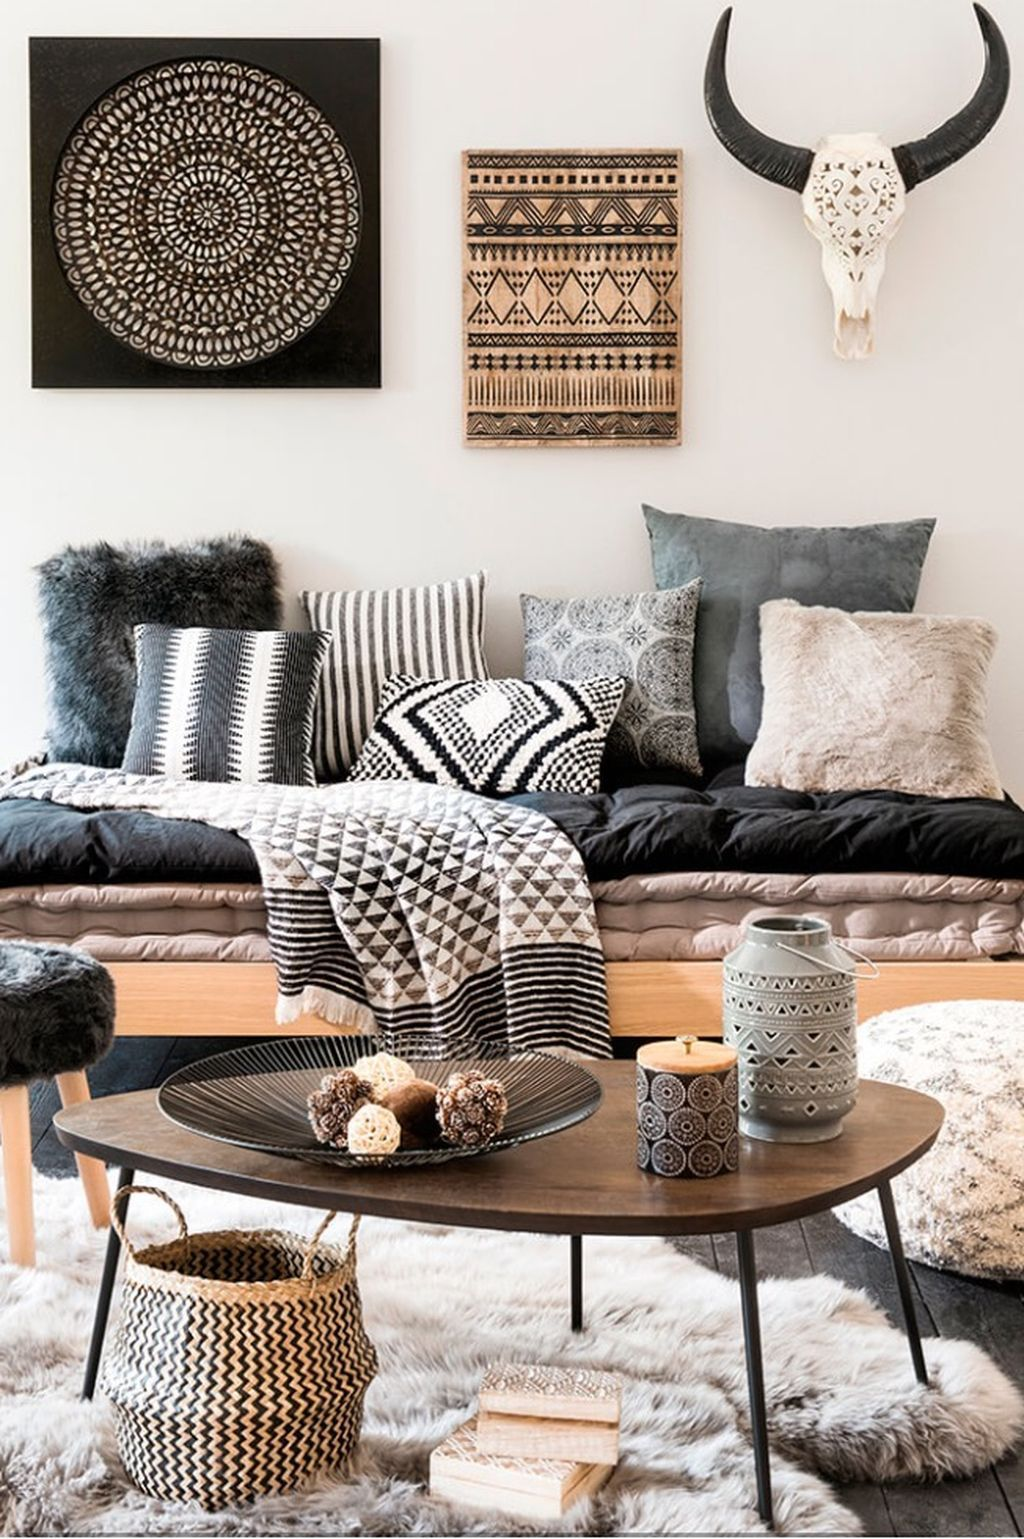 Gorgeous 60 Cozy Farmhouse Living Room Decor Ideas Https Homearchite Co Modern Farmhouse Living Room Decor Farmhouse Style Living Room Farm House Living Room